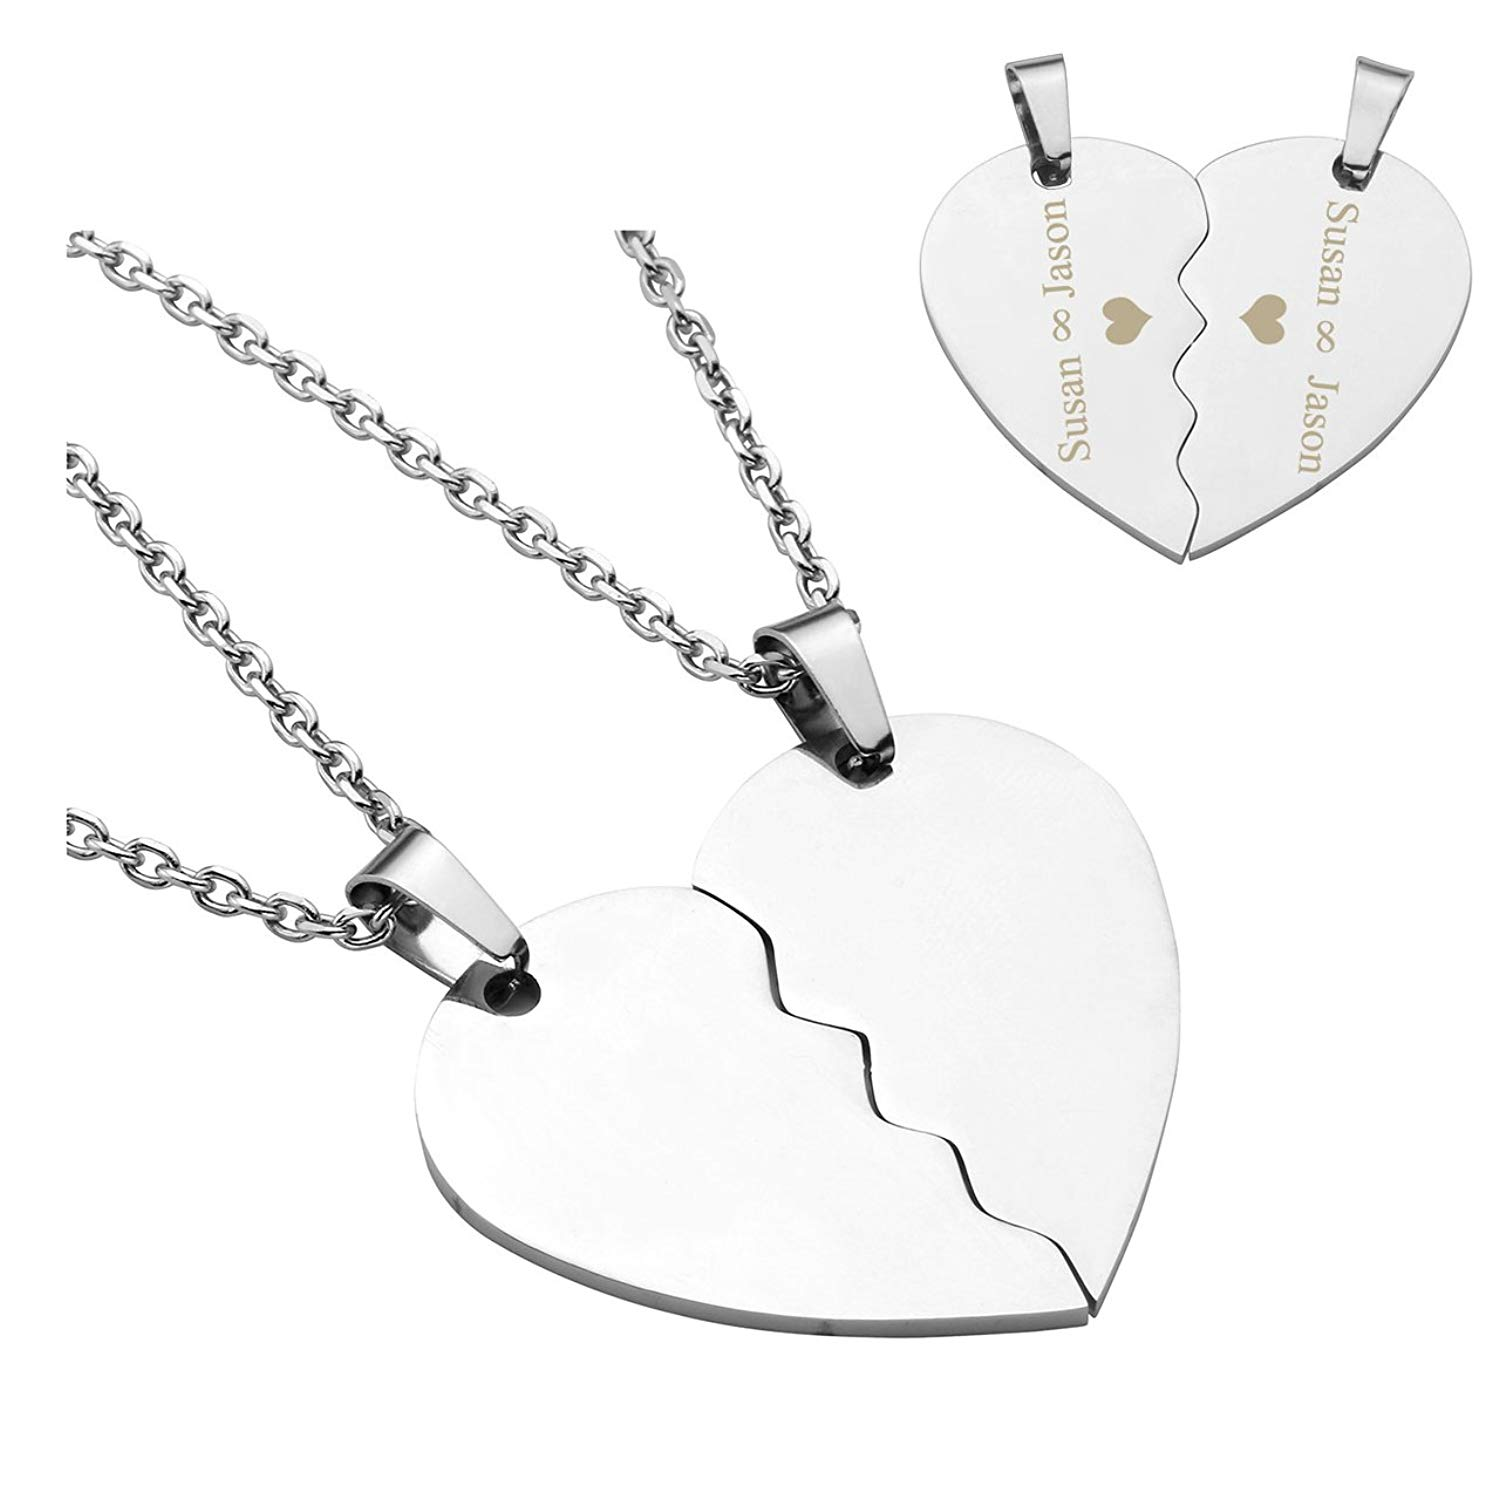 cf64b0761 Get Quotations · PiercingJ ❤VALENTINES GIFTS 2PCS Personalized Custom  Engraved Stainless Steel Matching Heart Puzzle Pendant His and